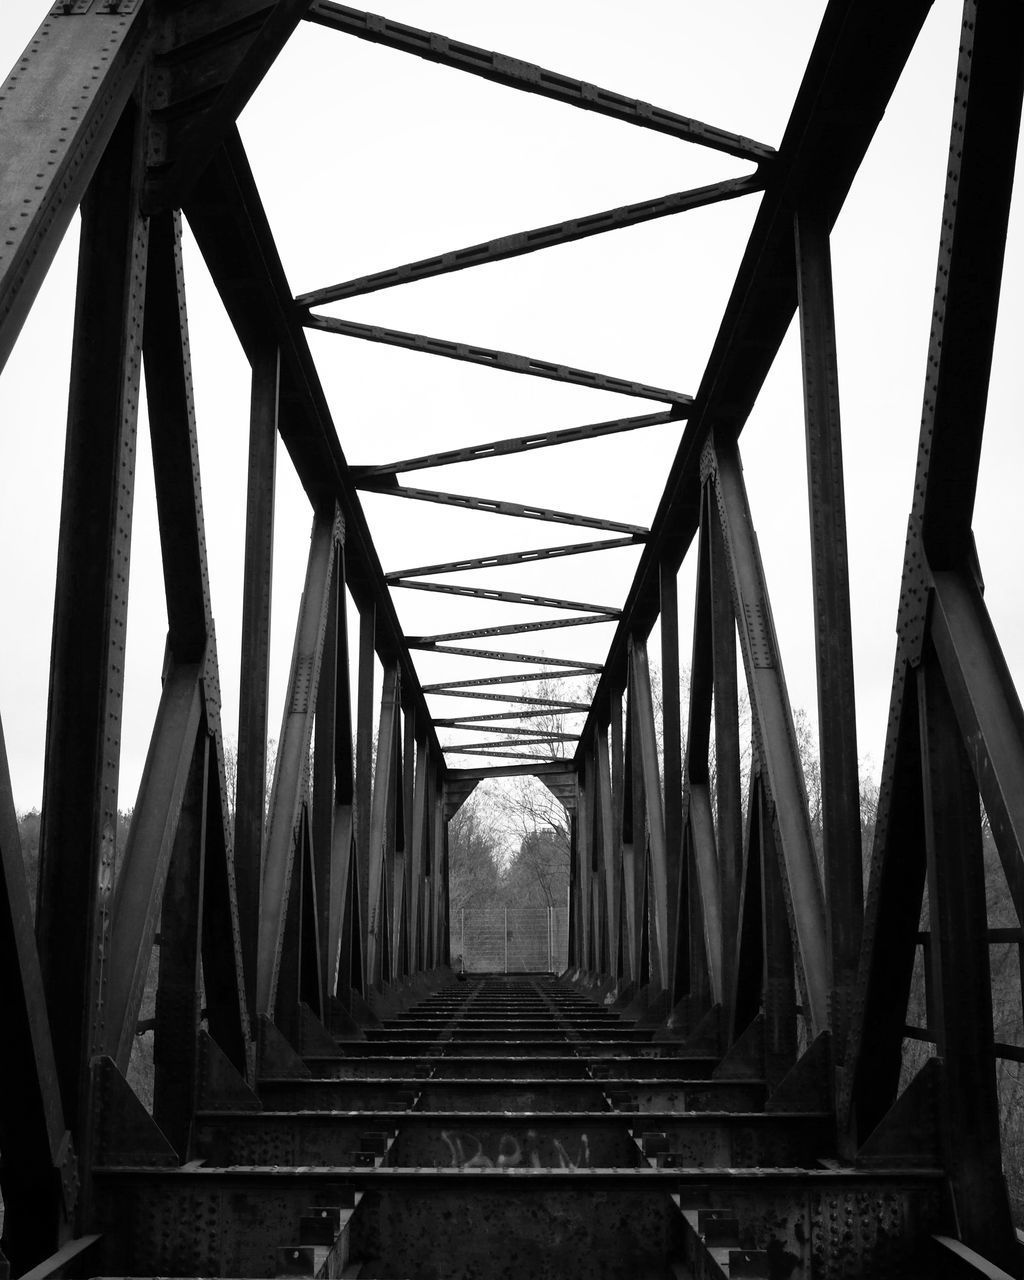 LOW ANGLE VIEW OF BRIDGE AGAINST SKY IN BACKGROUND